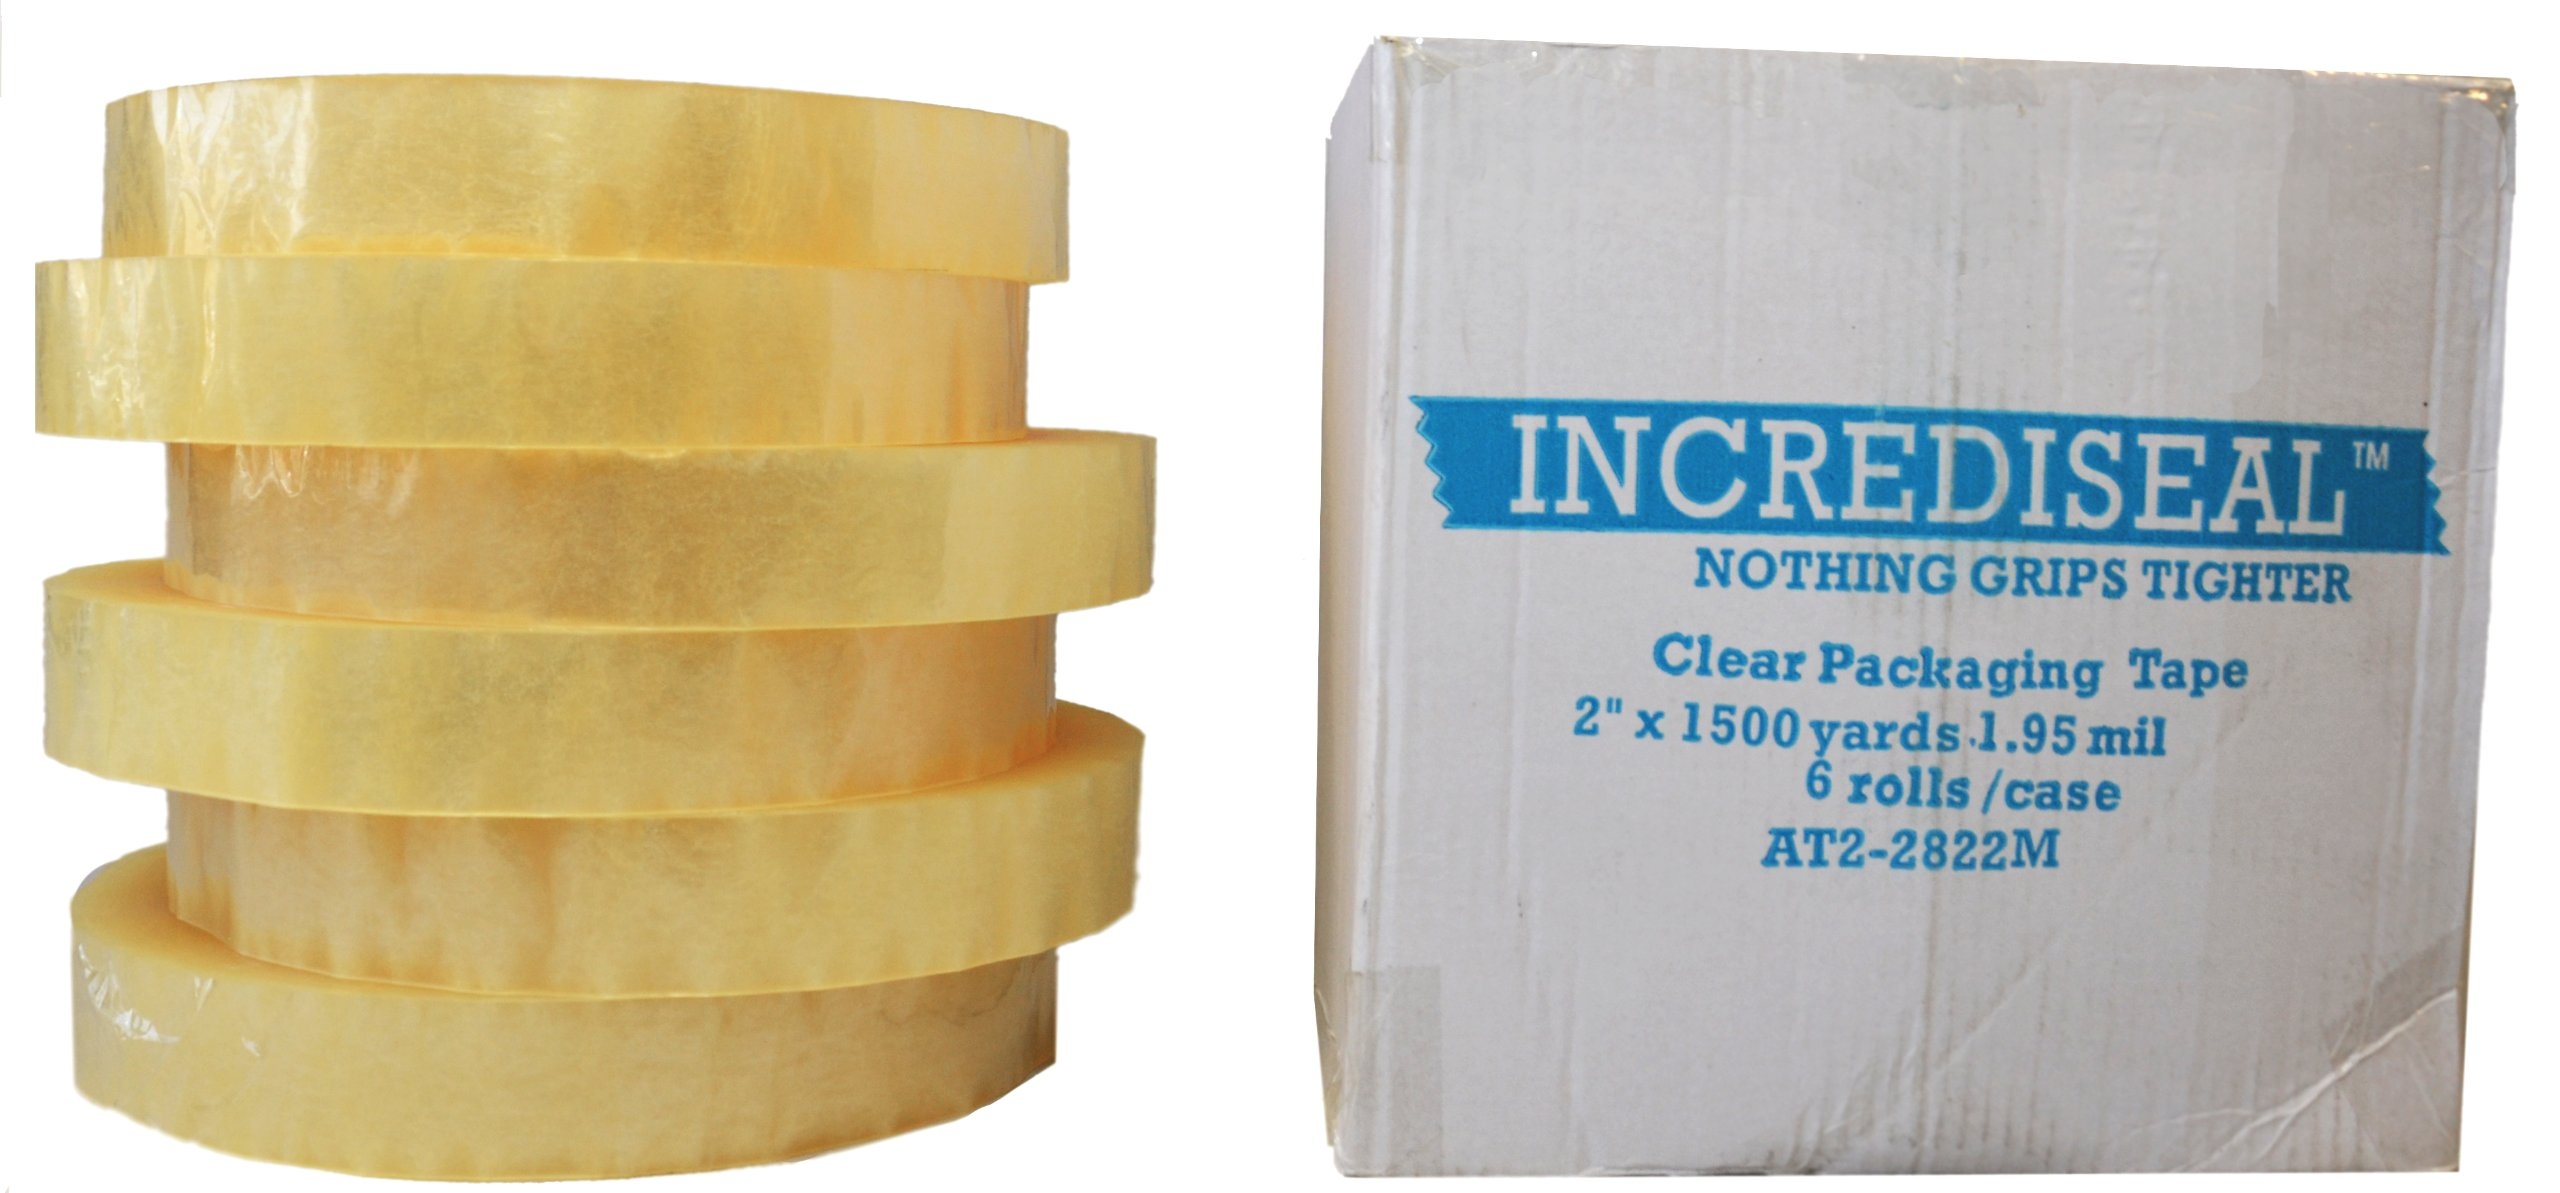 INCREDISEAL 6 Rolls Machine Tape, 2 Inch x 1500 Yards x 1.95 Mil - Clear